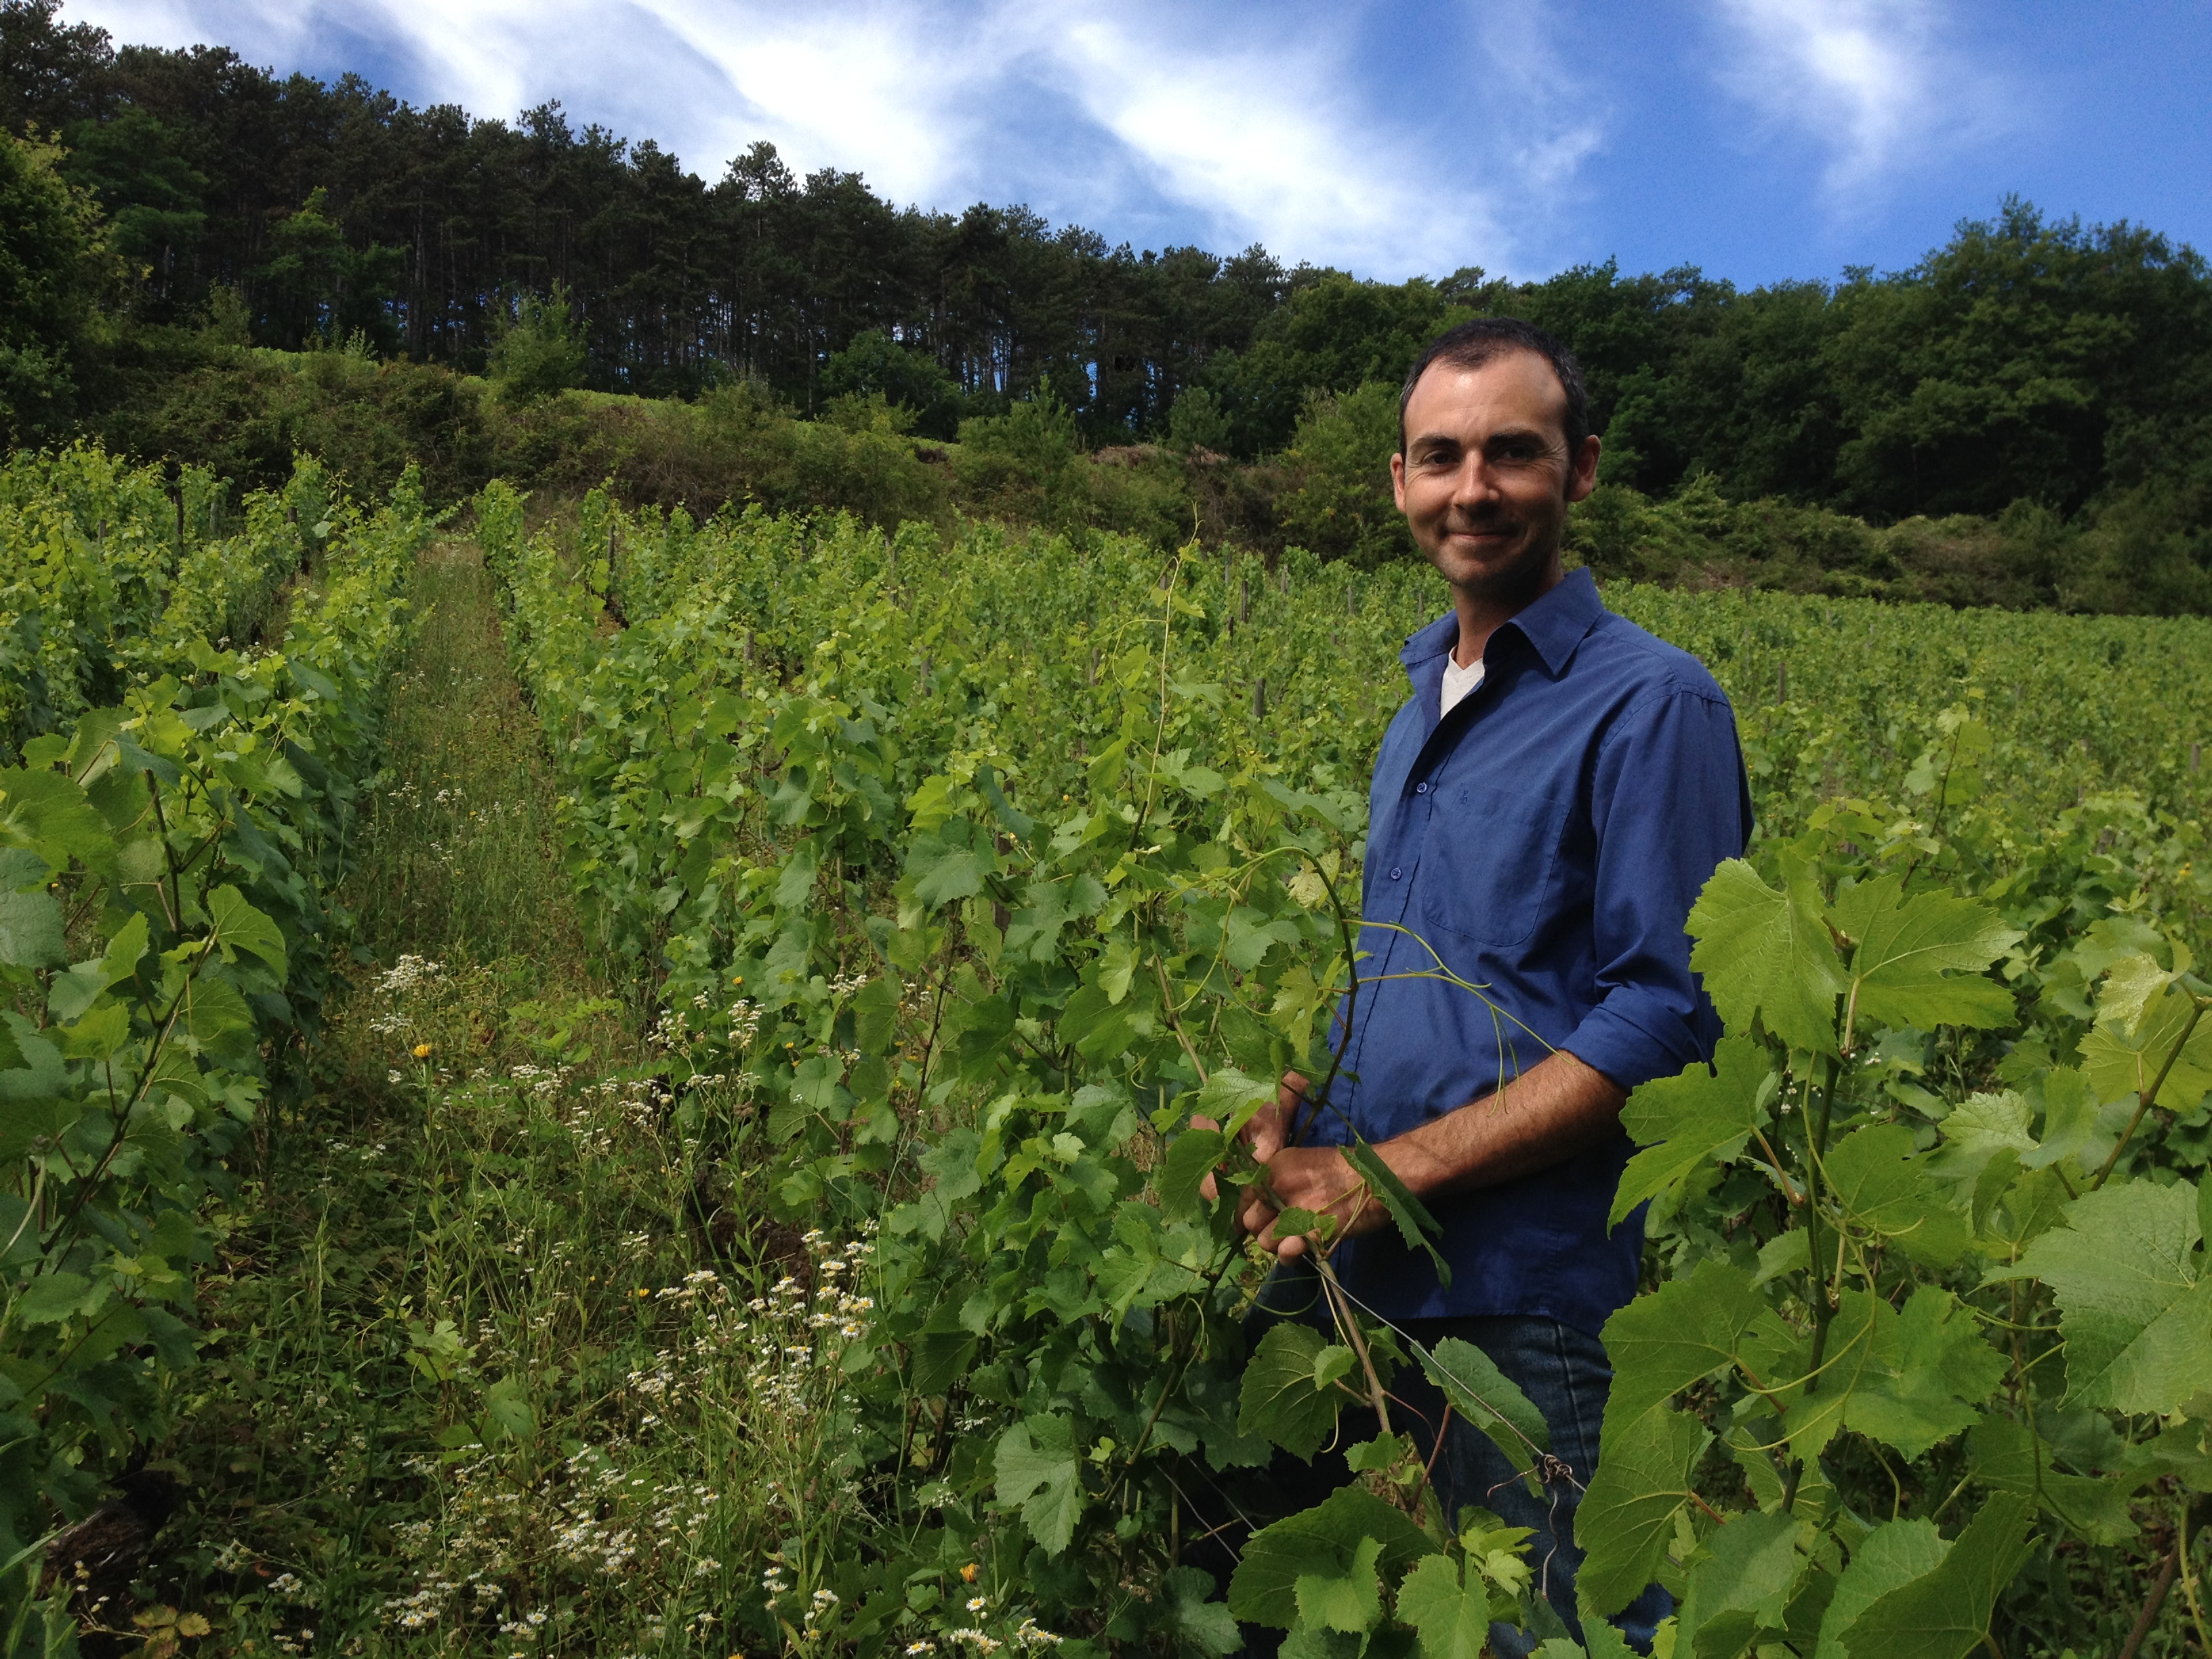 Planting of vines with Biodynamics technics in Hautes Côtes de Beaune